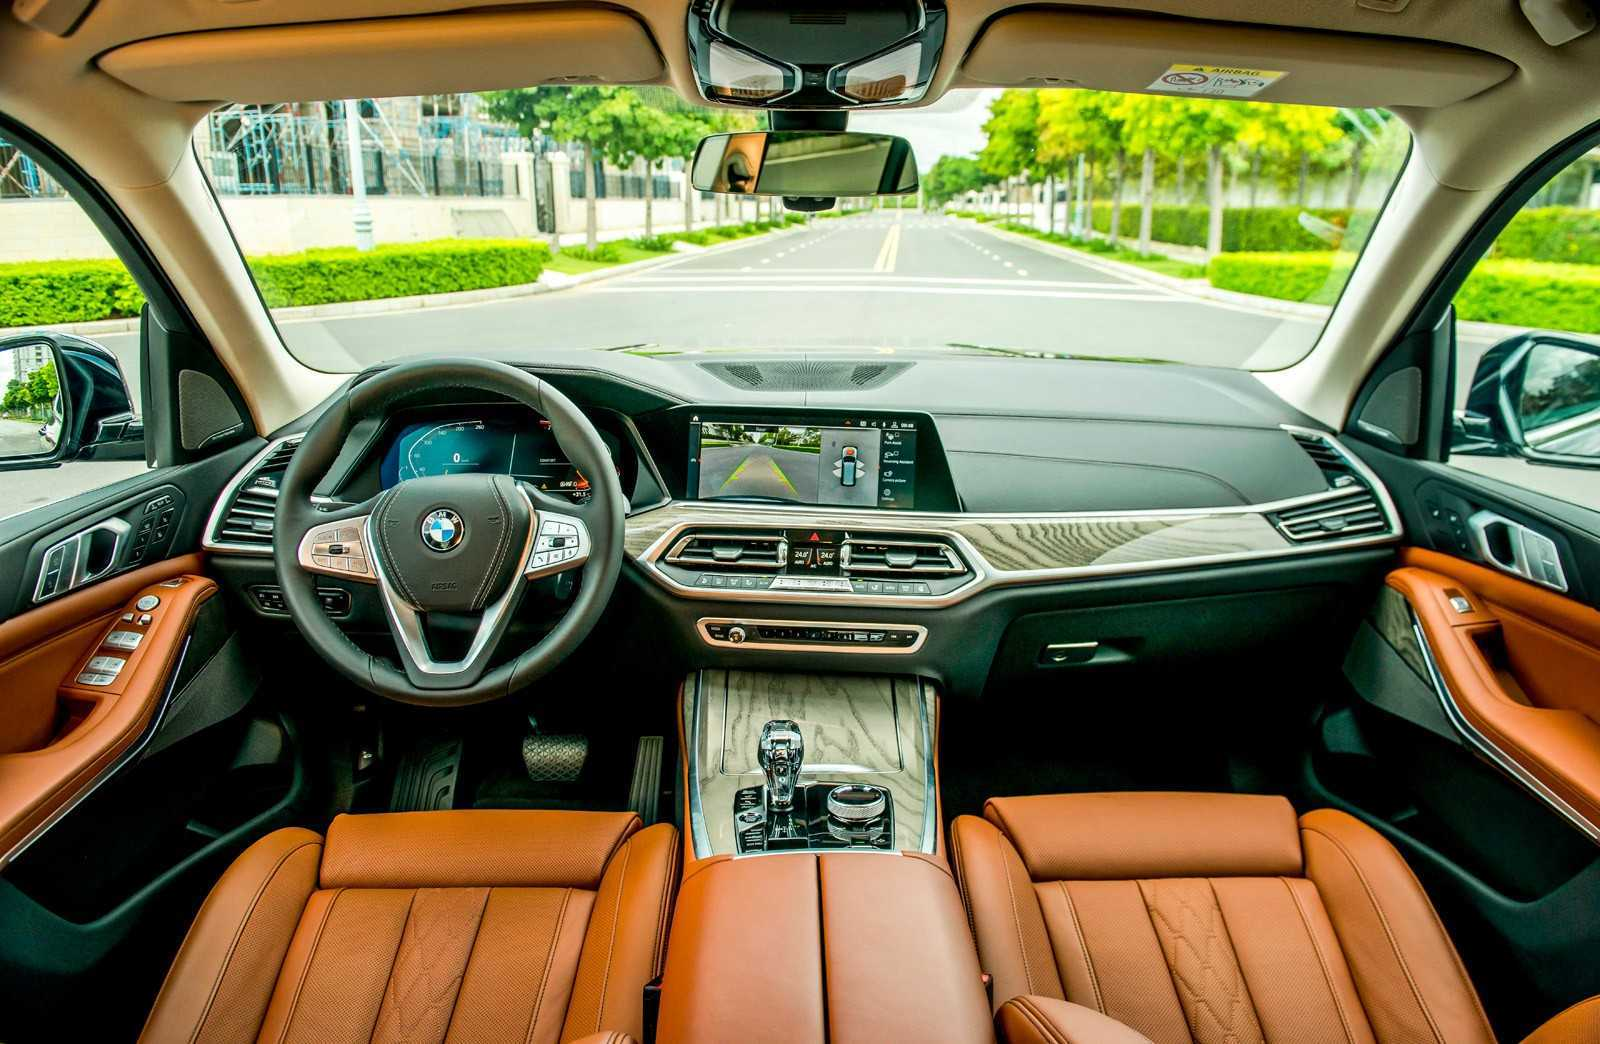 https://giaxe-bmw.vn/wp-content/uploads/2019/07/bmw-x7-noi-that-a41-15624450845181420056013.jpg